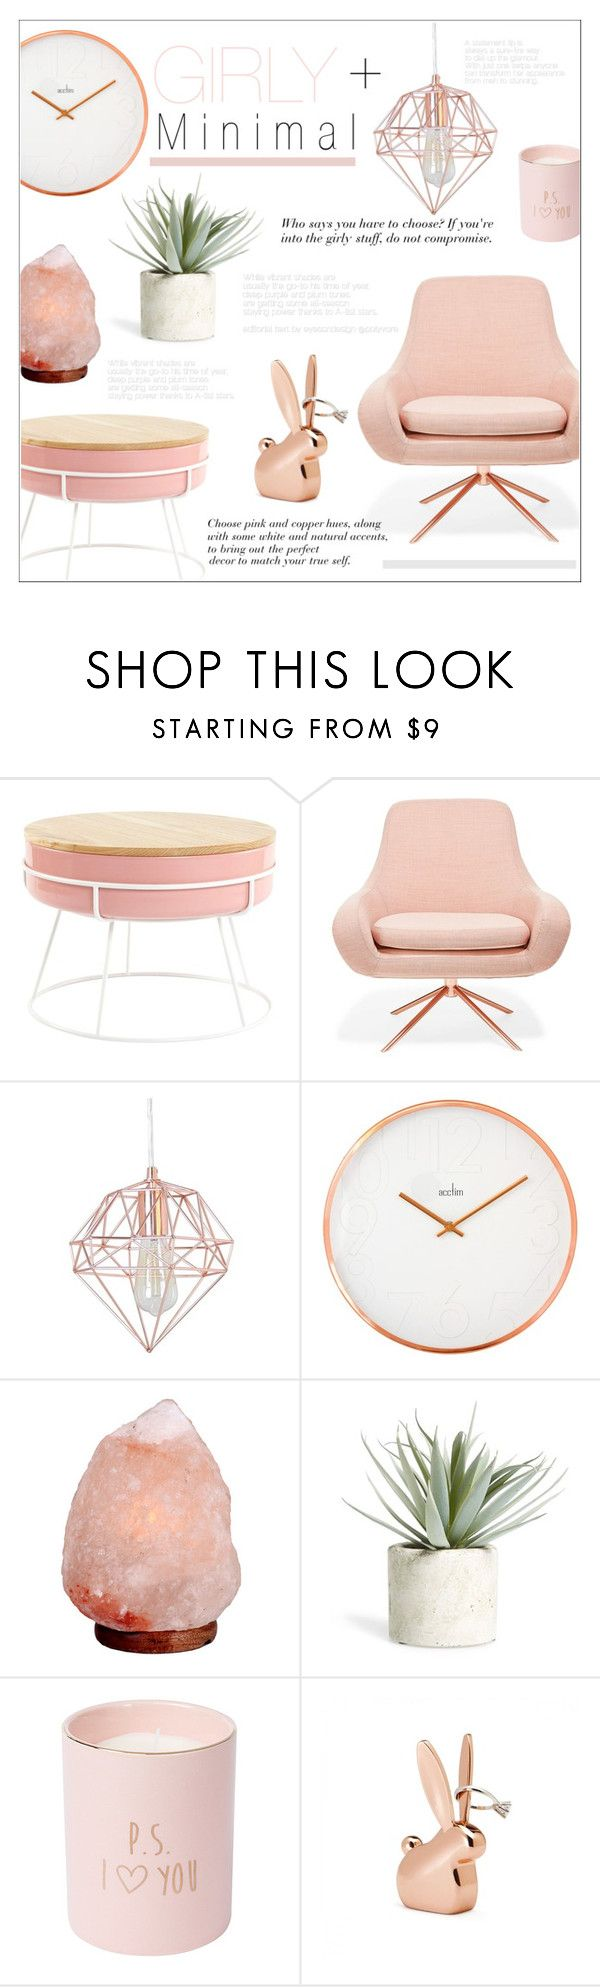 """Girly & Minimal"" by alexandrazeres ❤ liked on Polyvore featuring interior, interiors, interior design, home, home decor, interior decorating, Softline, Crystal Art, Allstate Floral and homedecor"